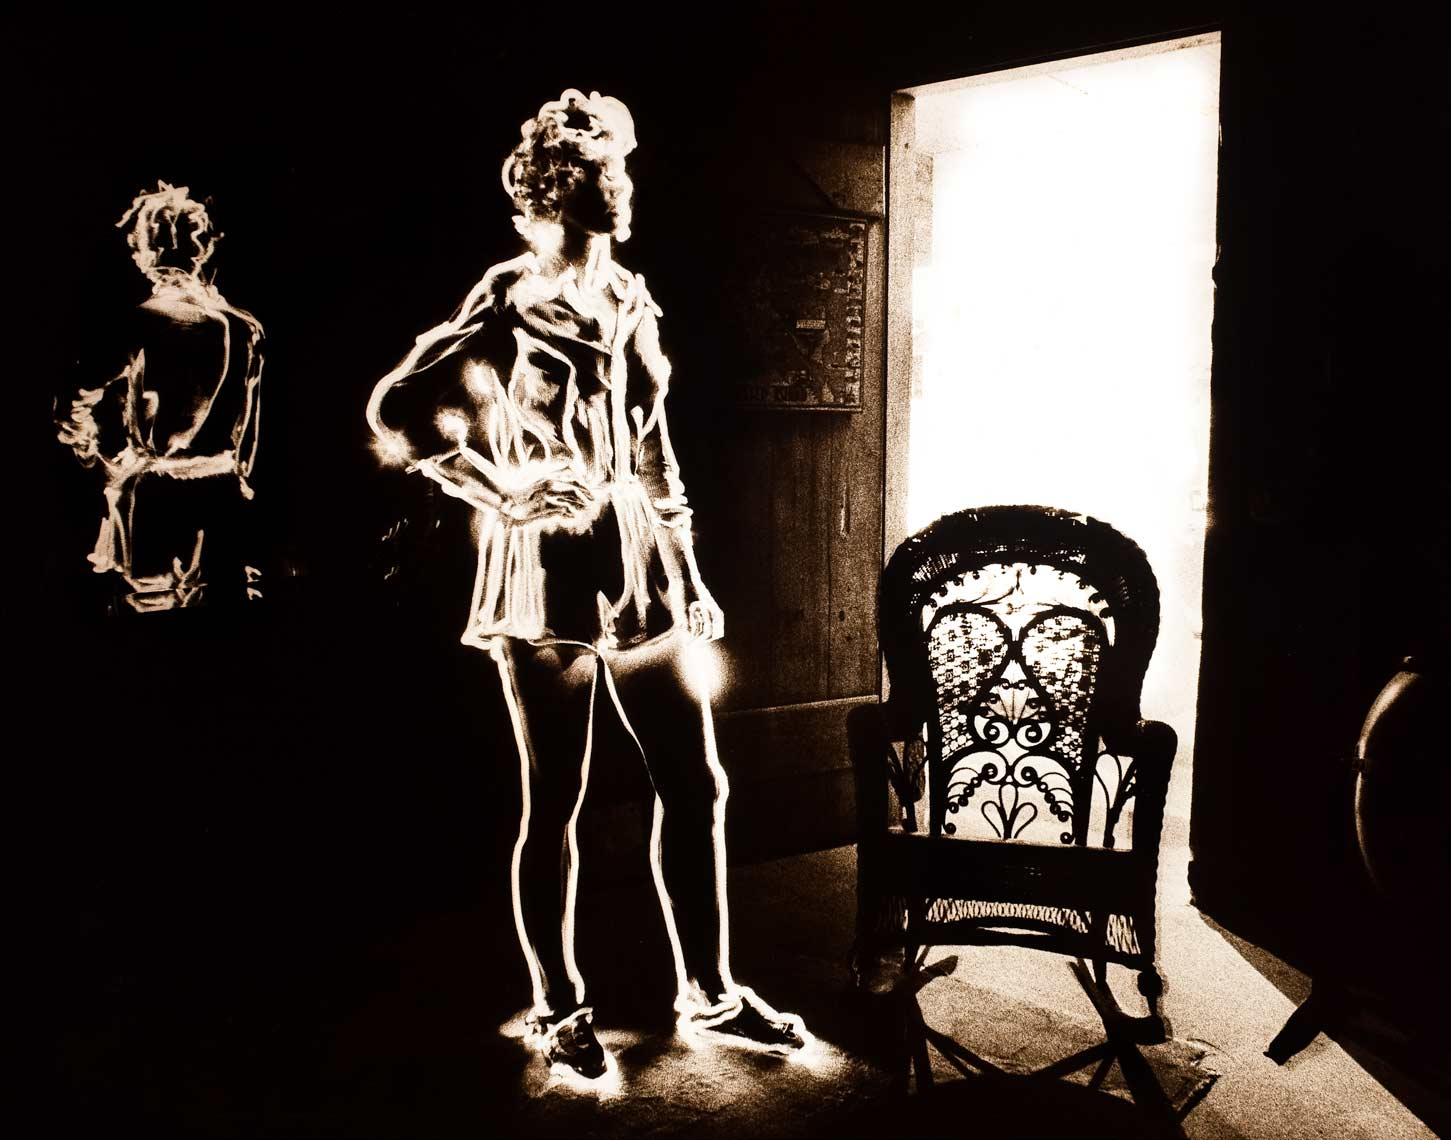 David Lebe; In Front of The Large Mirror, 1981, light drawing, black and white photograph